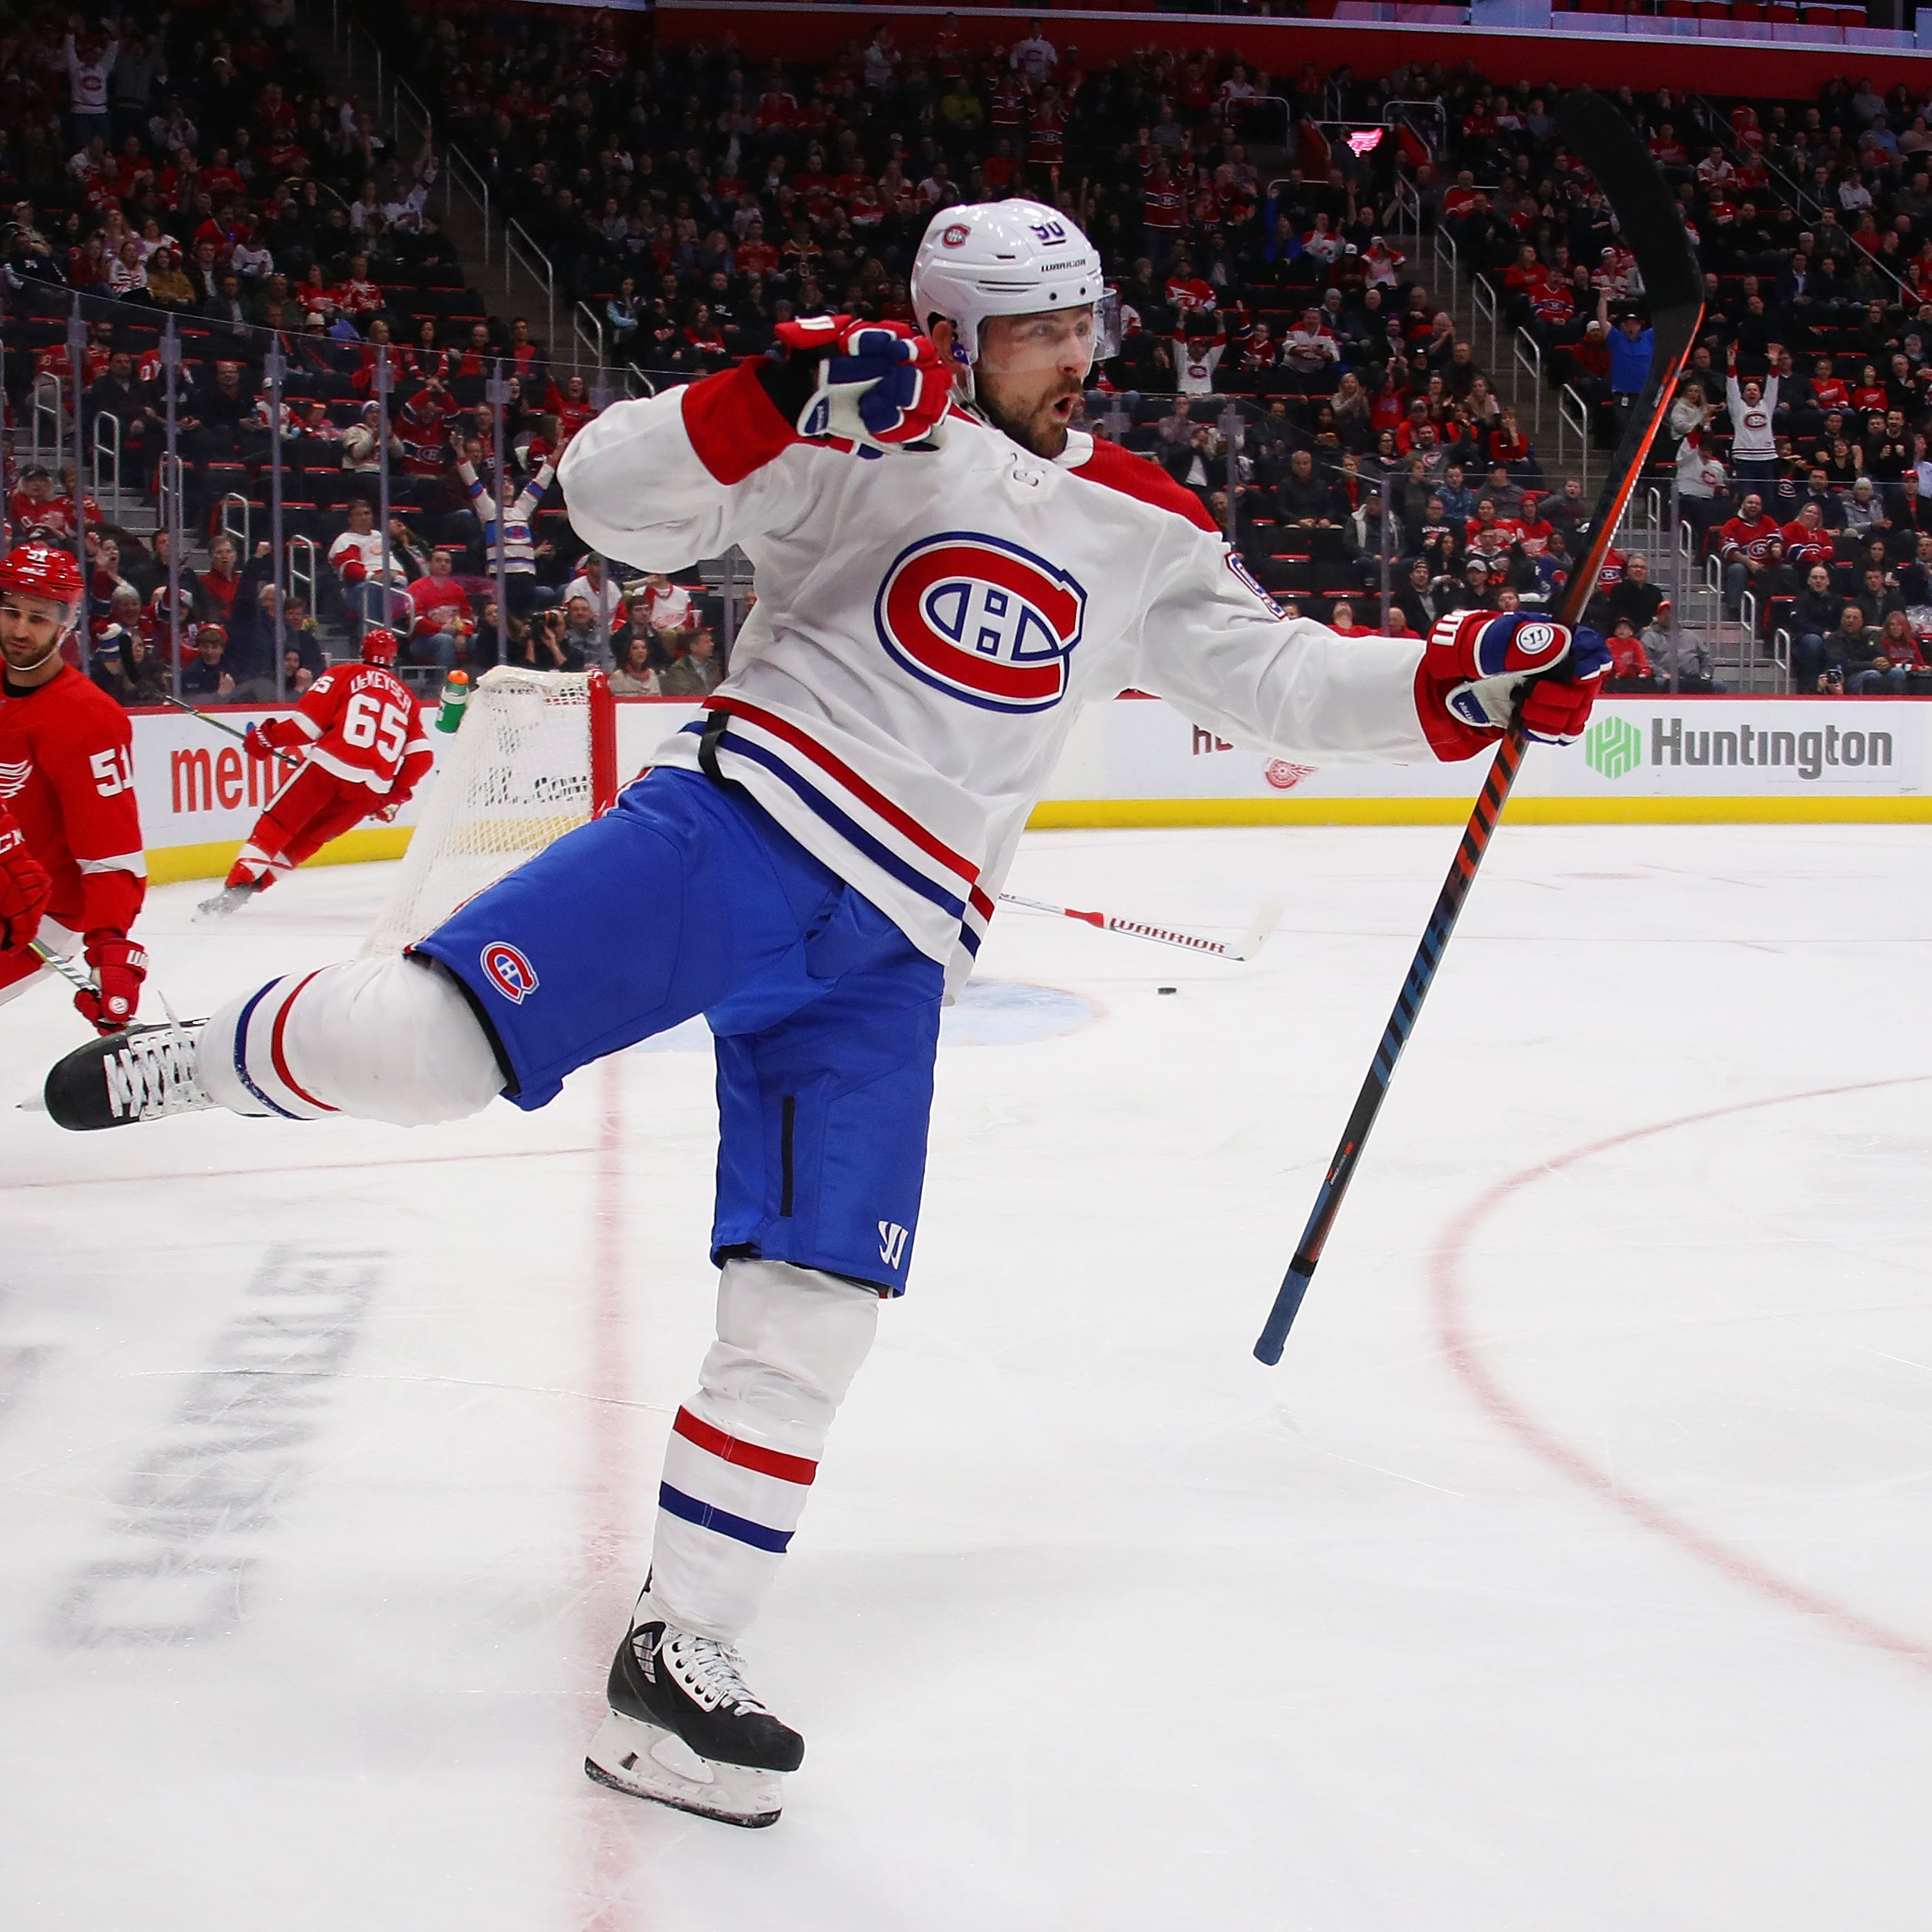 Detroit Red Wings embarrassed by Canadiens in 8-1 loss at home